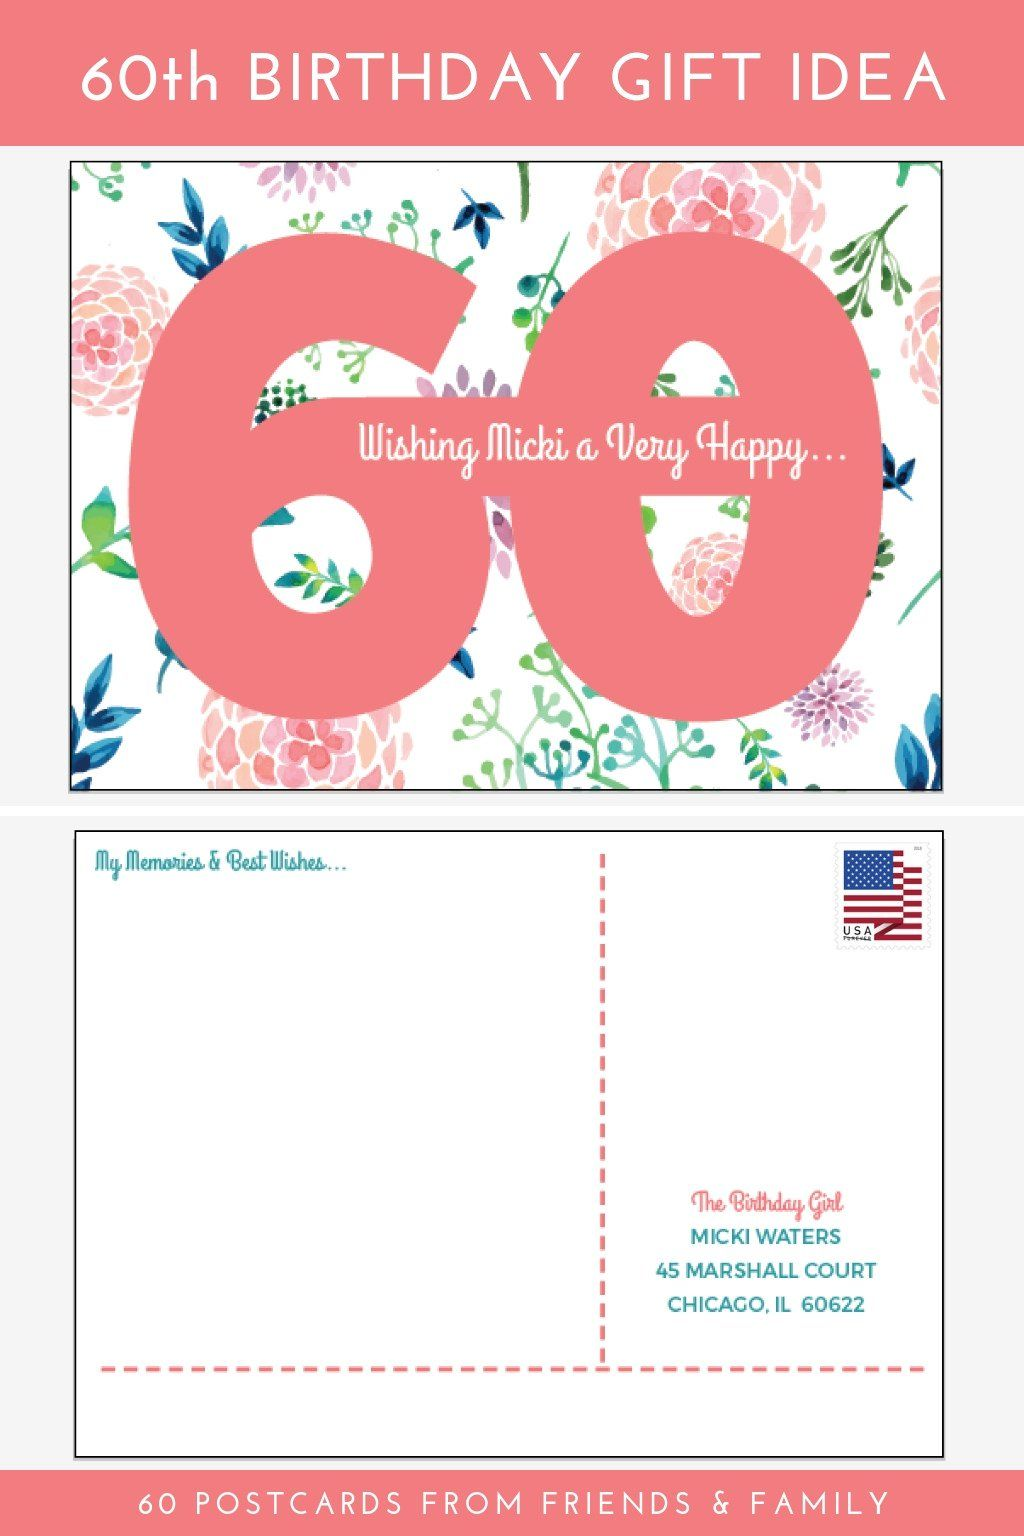 60th Birthday Gift Idea 60 Postcards From Friends And Family Order These Personalized